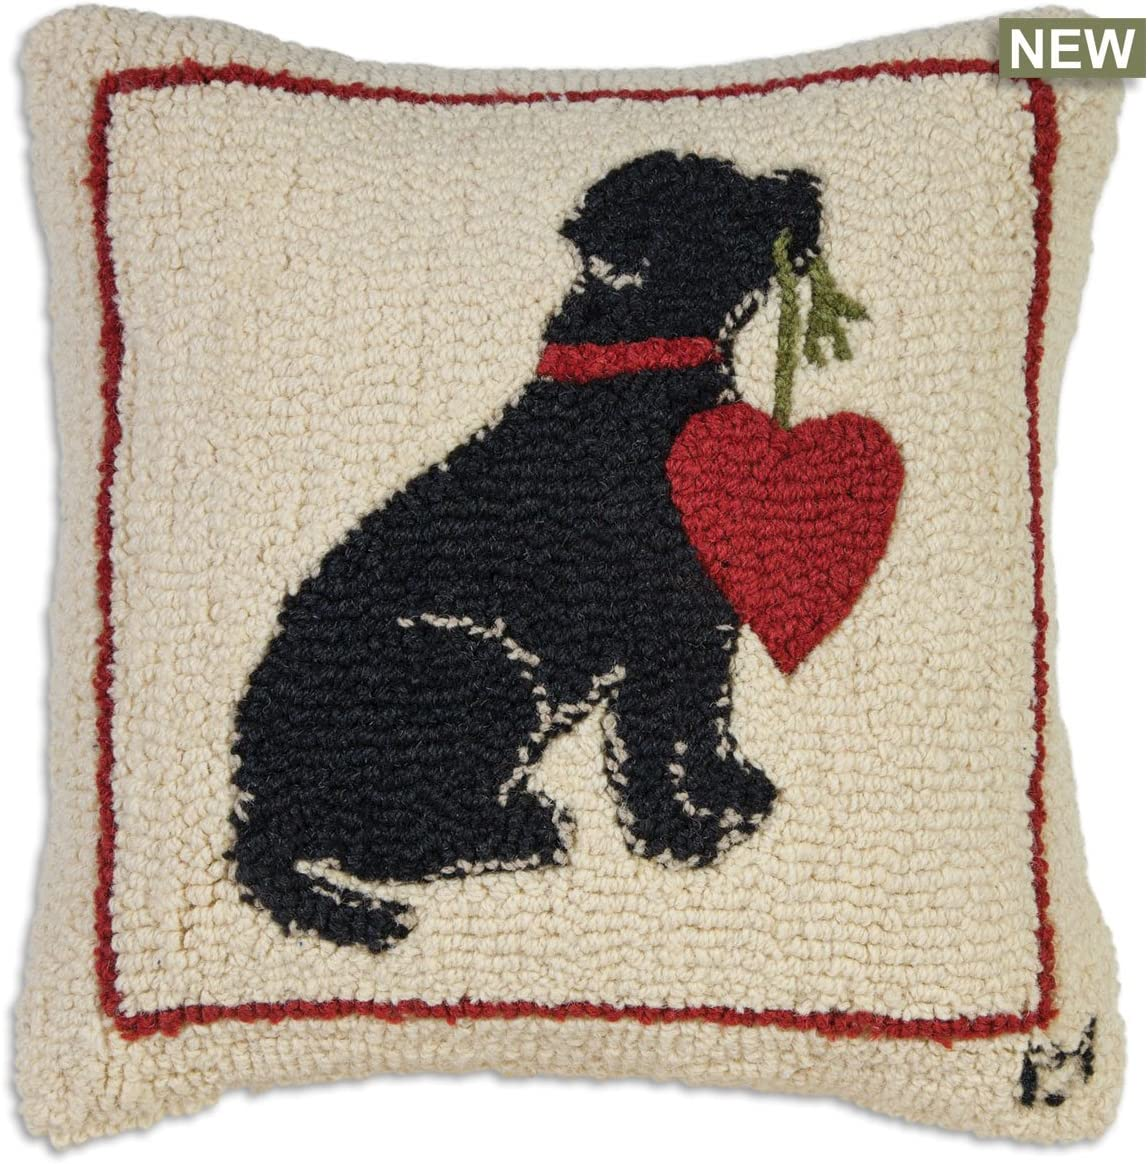 Chandler 4 Corners My Heart on a String 18 Pillow